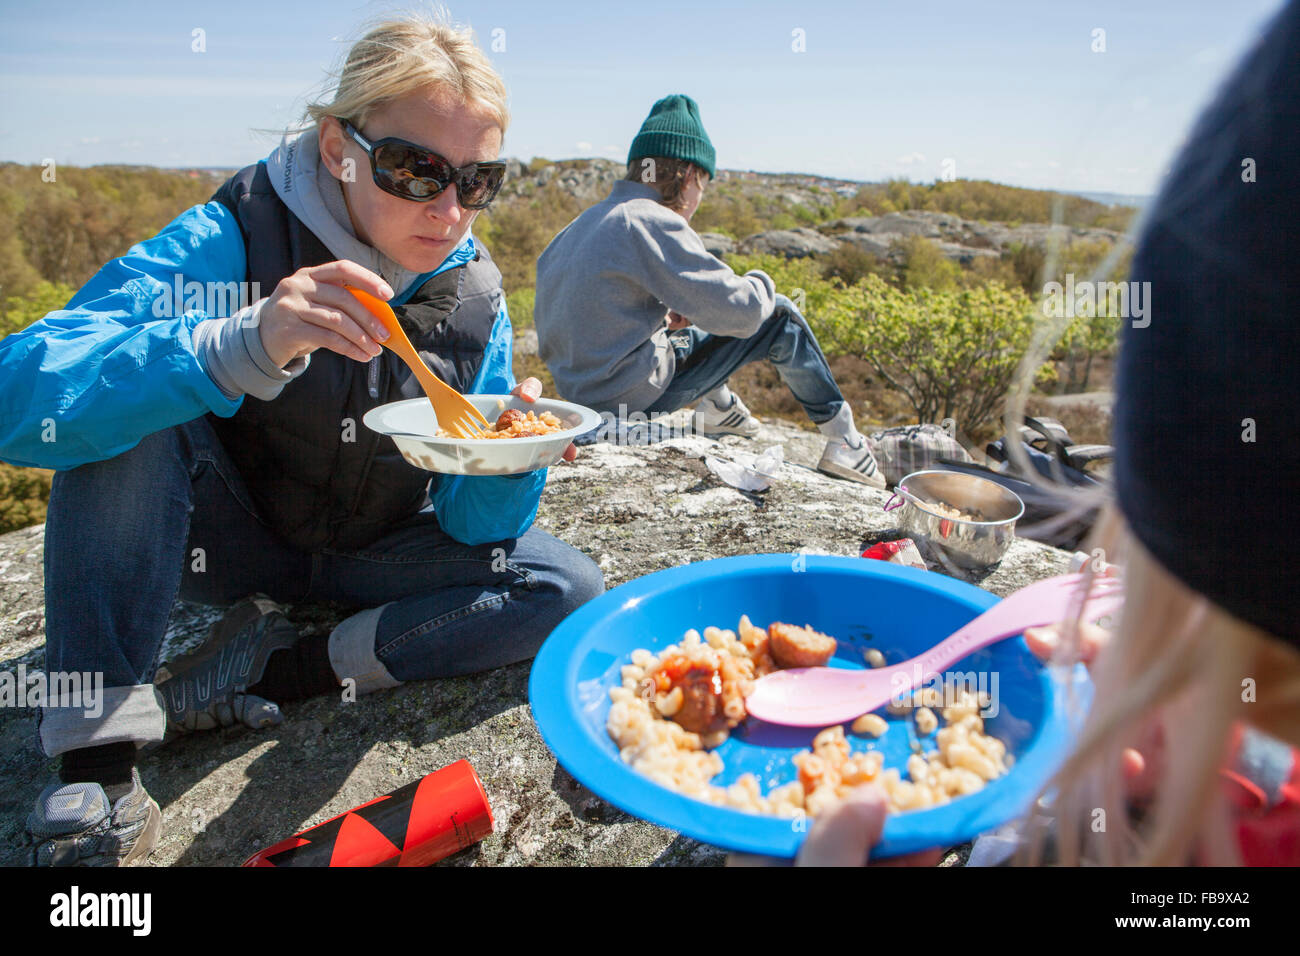 Sweden, Gothenburg Archipelago, Vastergotland, Styrso, Mom and her two kids (8-9, 10-11) eating pasta and camping - Stock Image